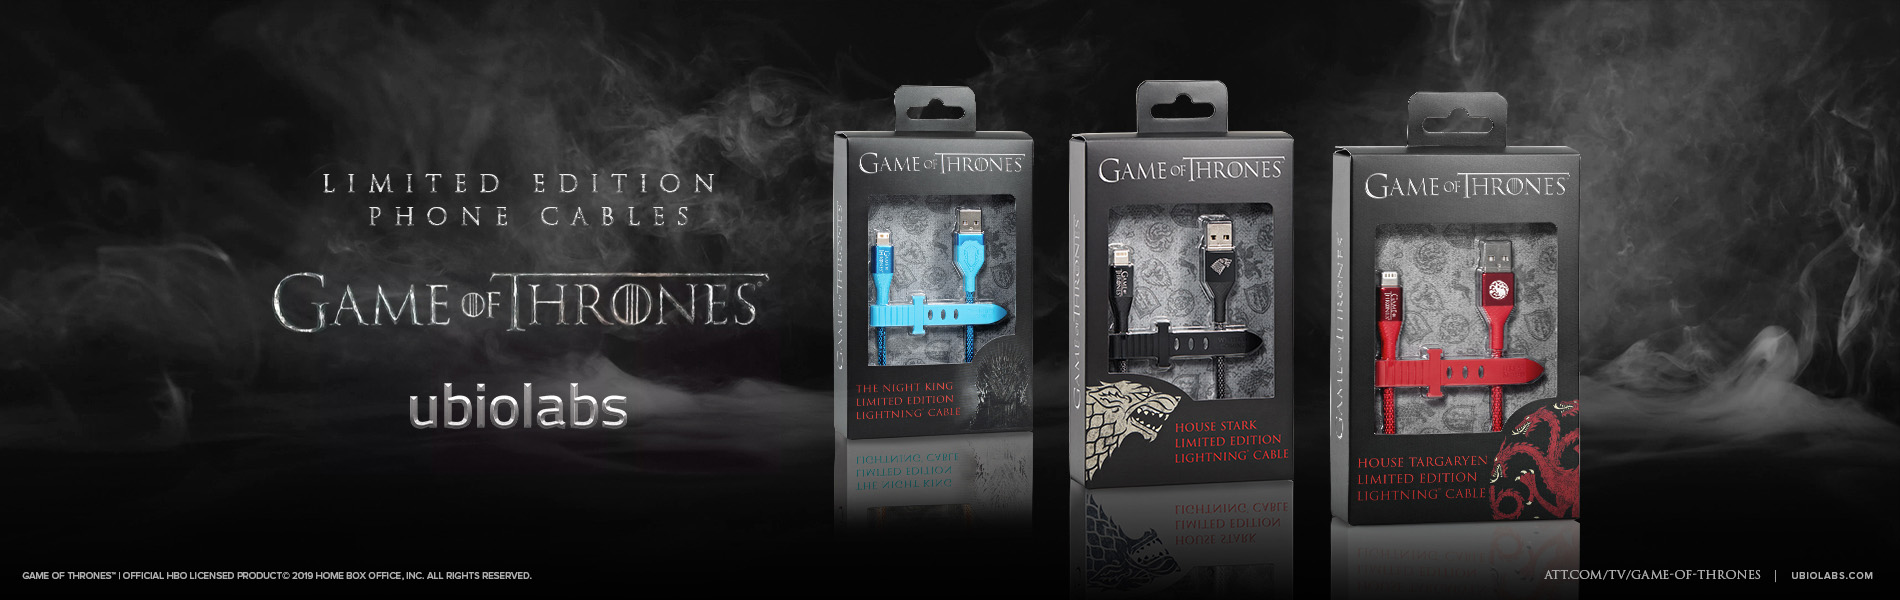 Game of Thrones mobile phone cables in their package